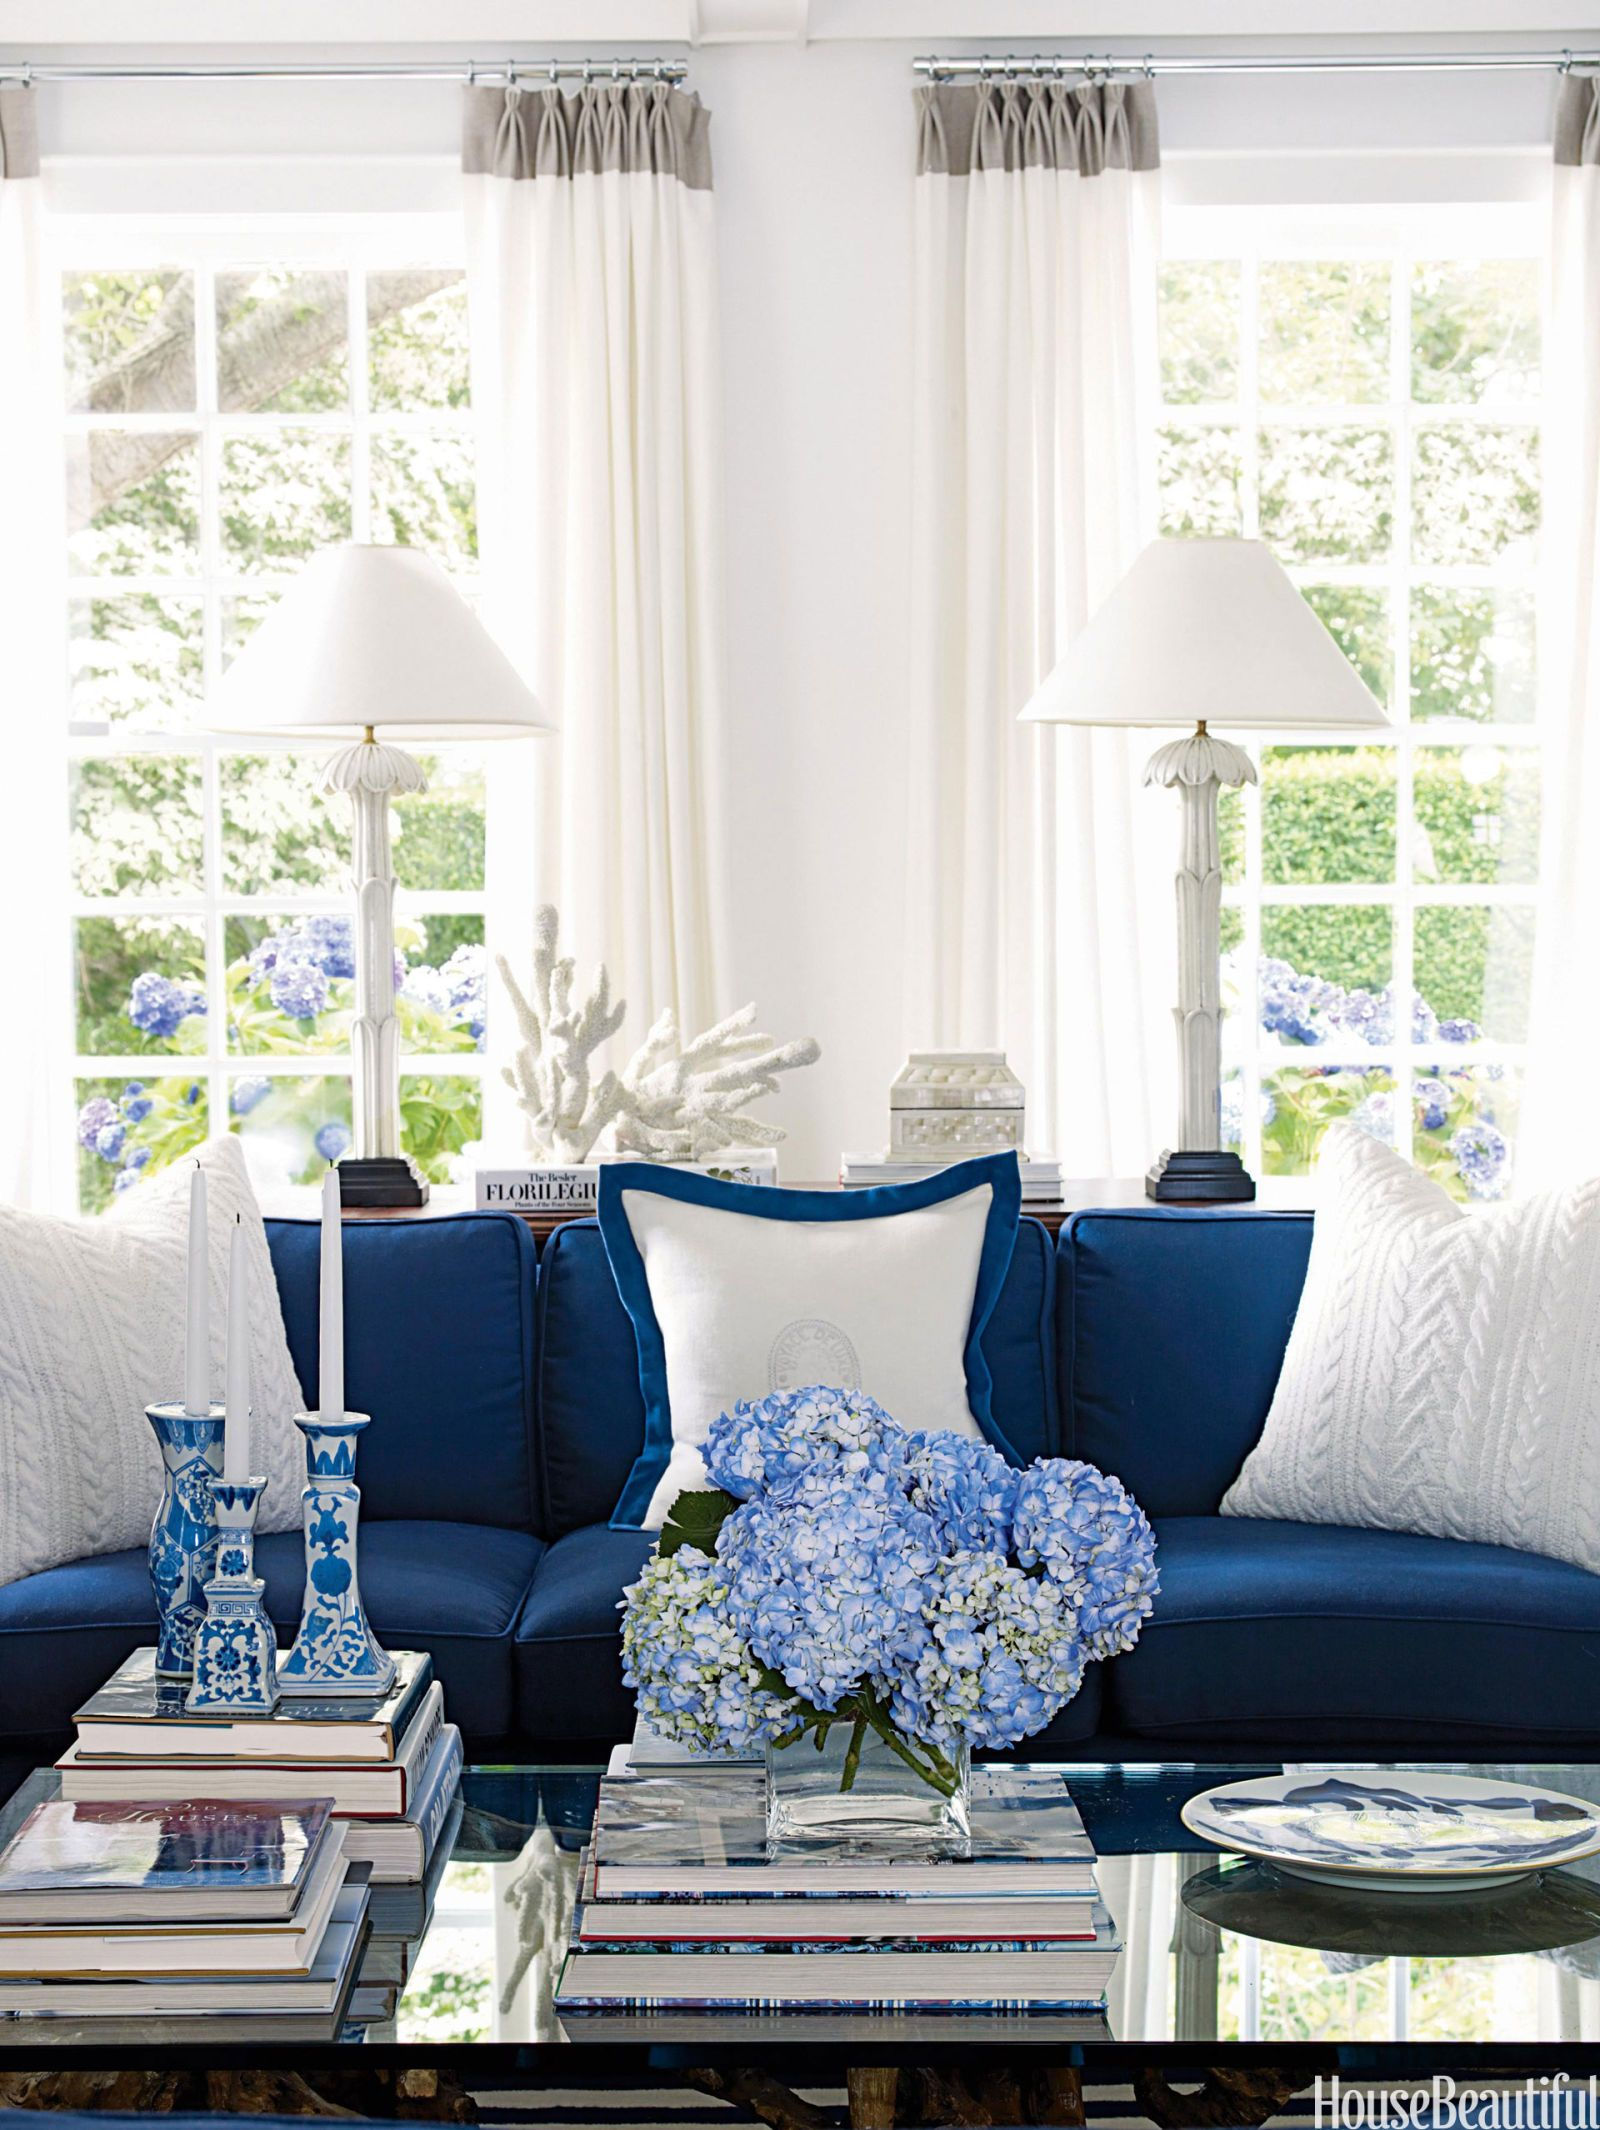 5 Fast Tips to a Tidy Home   Tabletop, Throw pillows and Display